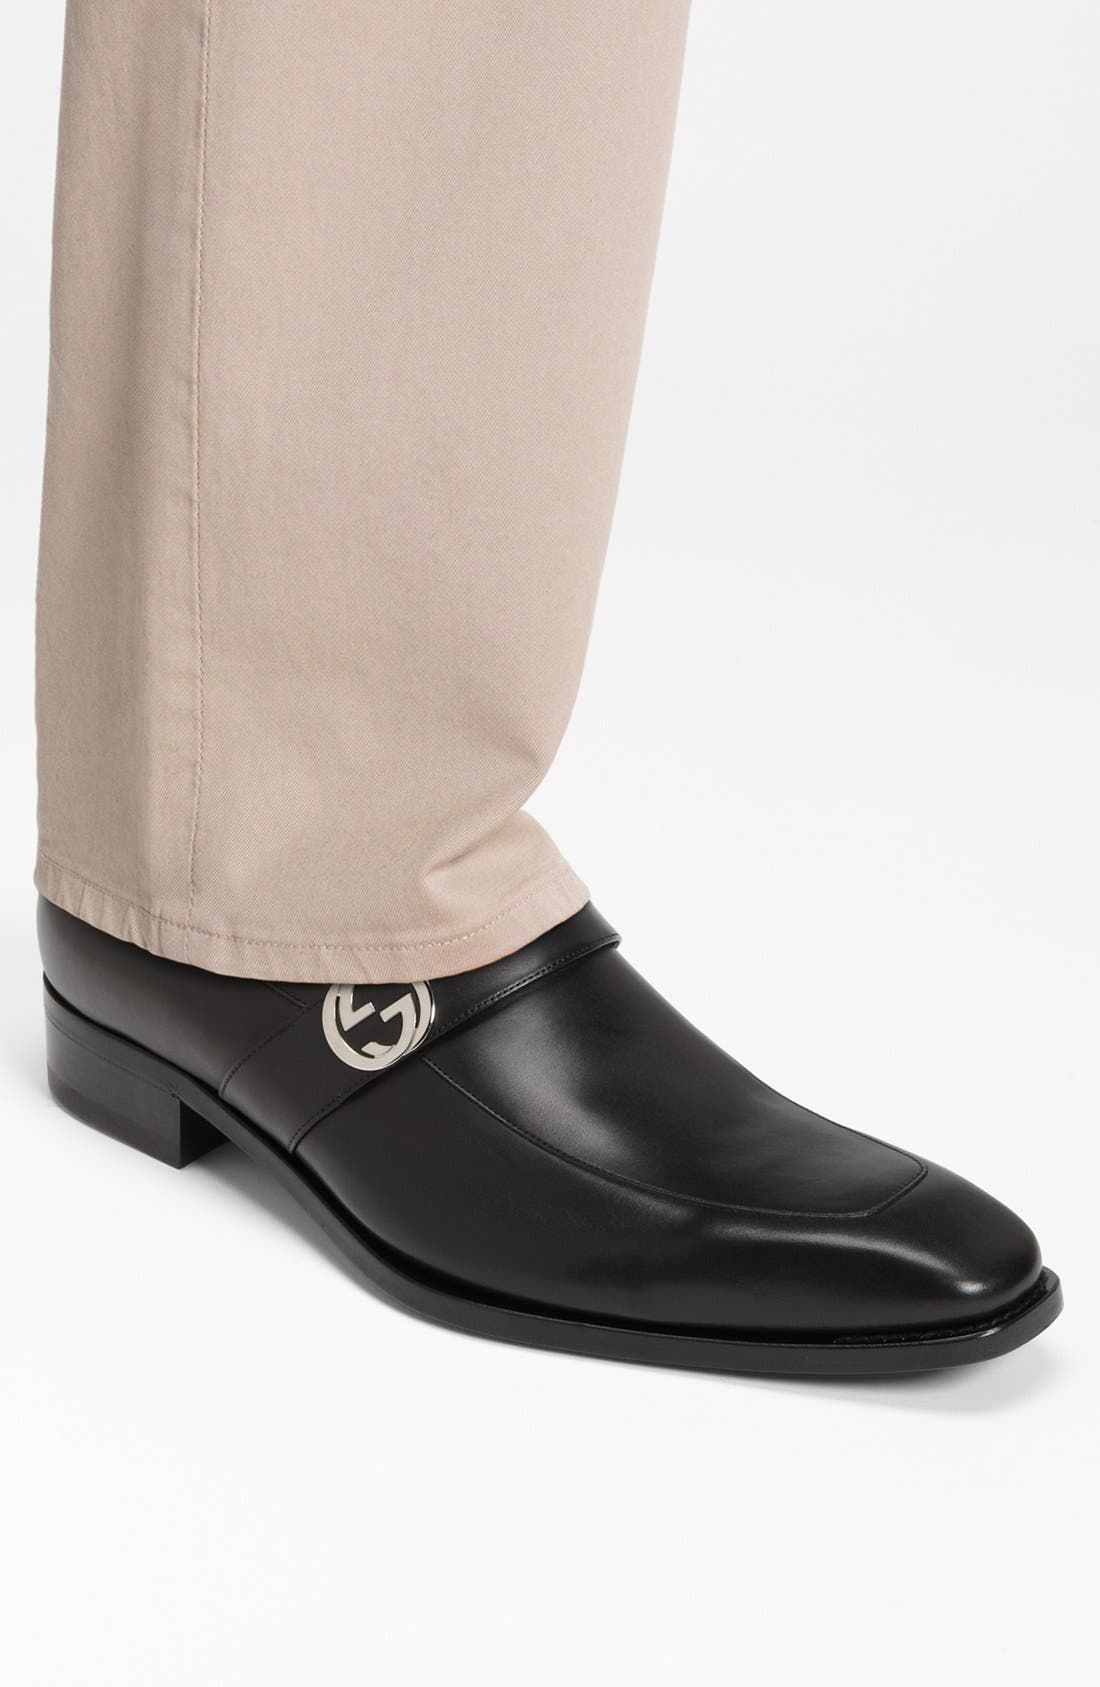 GUCCI,                             'Double G' Loafer,                             Alternate thumbnail 5, color,                             005